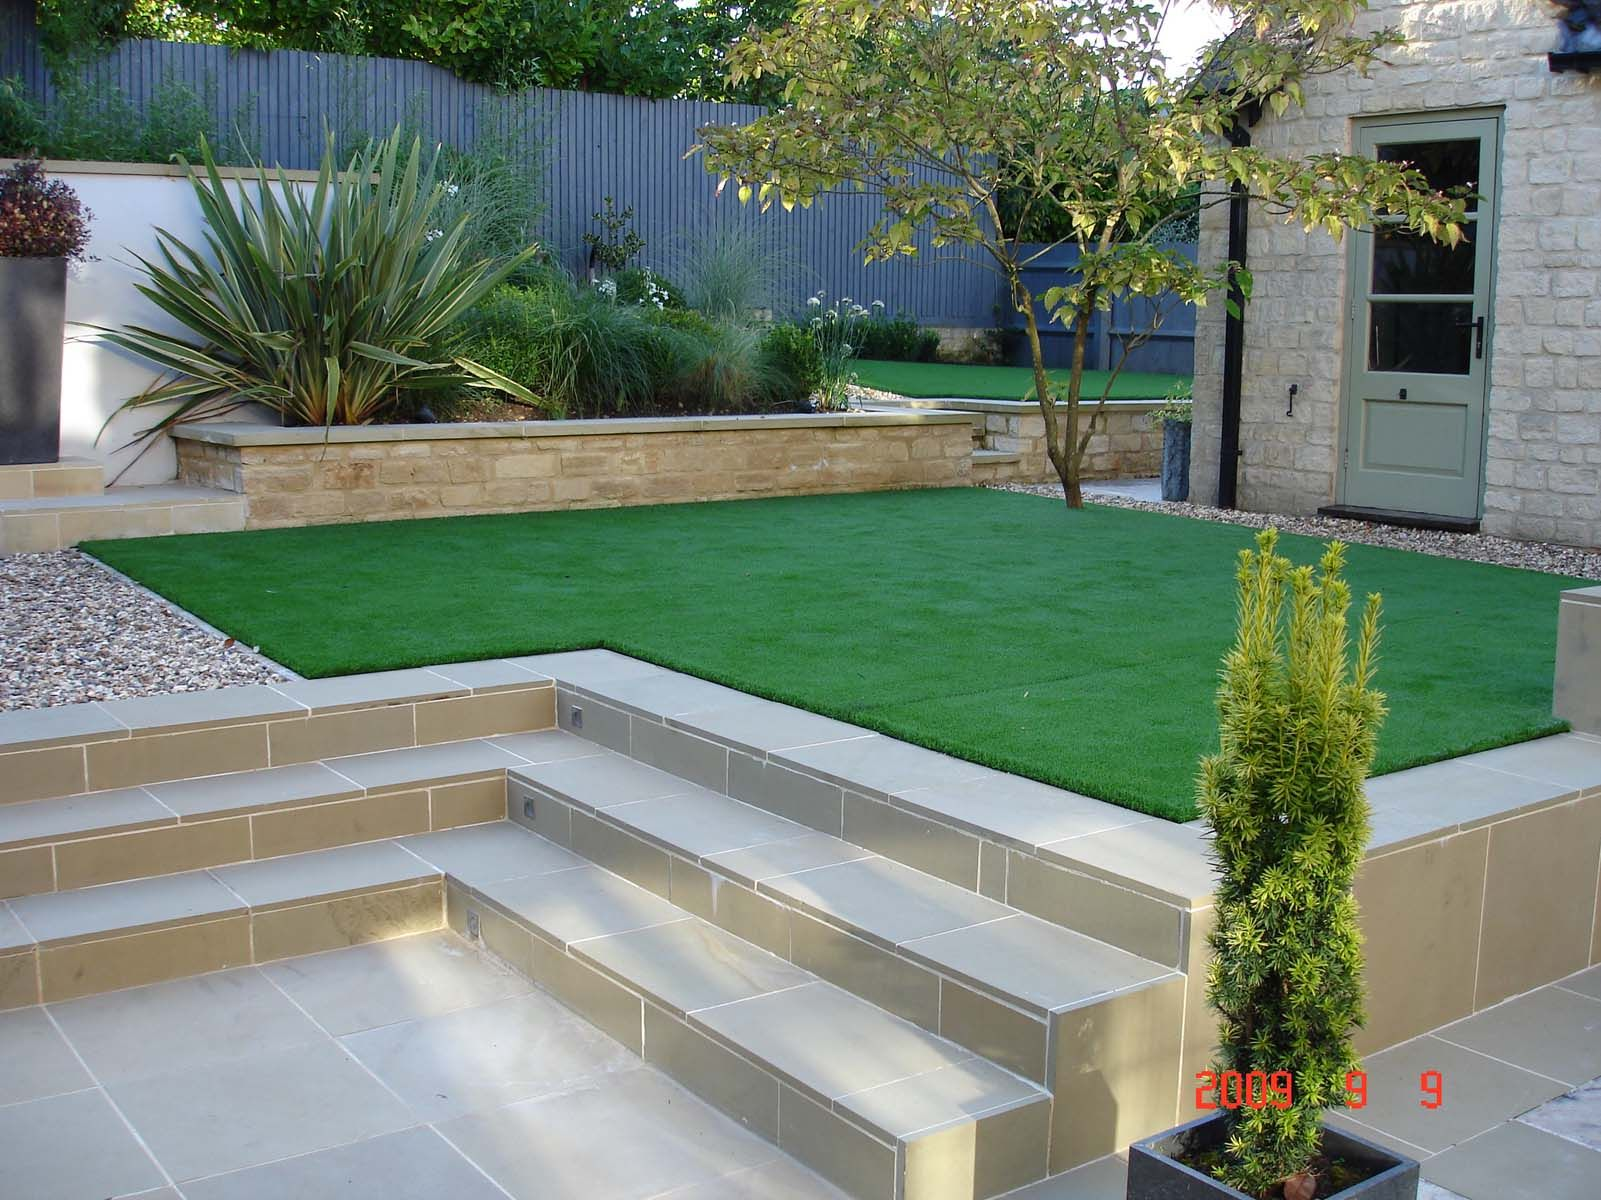 Low maintenance with artificial grass astro turf garden for Garden design ideas artificial grass